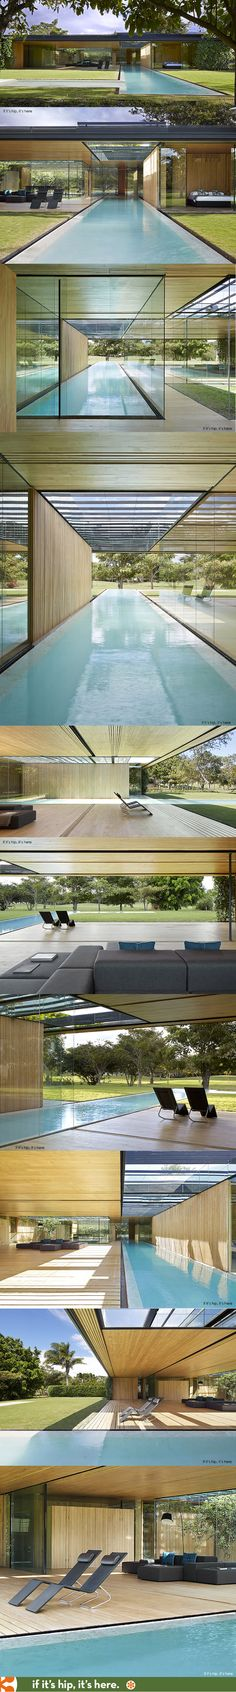 A stunning L-shaped pool melds the exterior with the interior of this Costa Rica home. | http://www.ifitshipitshere.com/the-inout-house-in-costa-rica-by-architect-joan-puigcorbe/